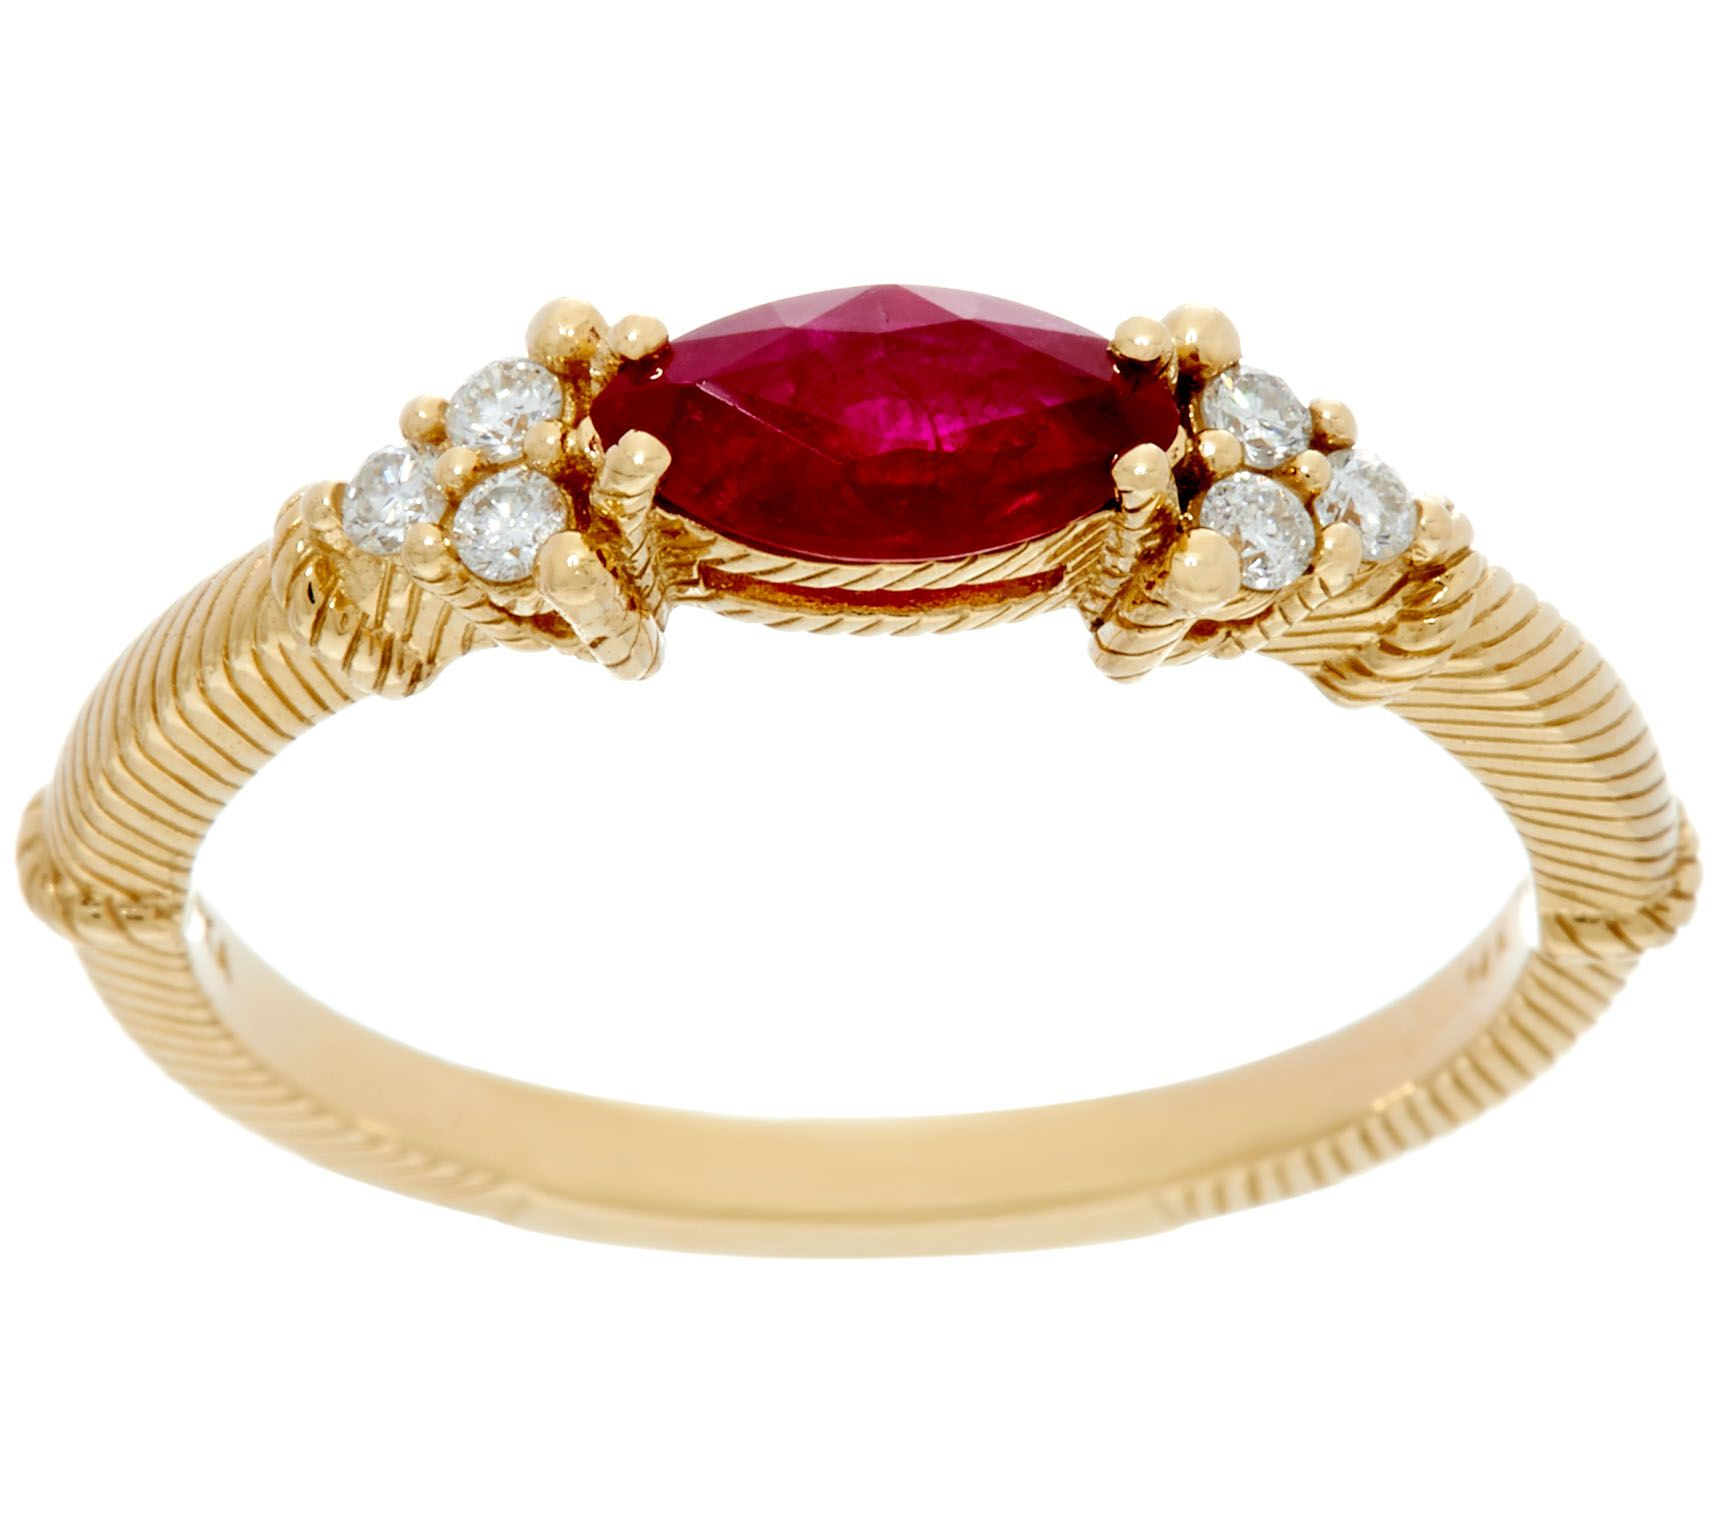 judith ripka 14k gold emerald or ruby 1 10 cttw diamond